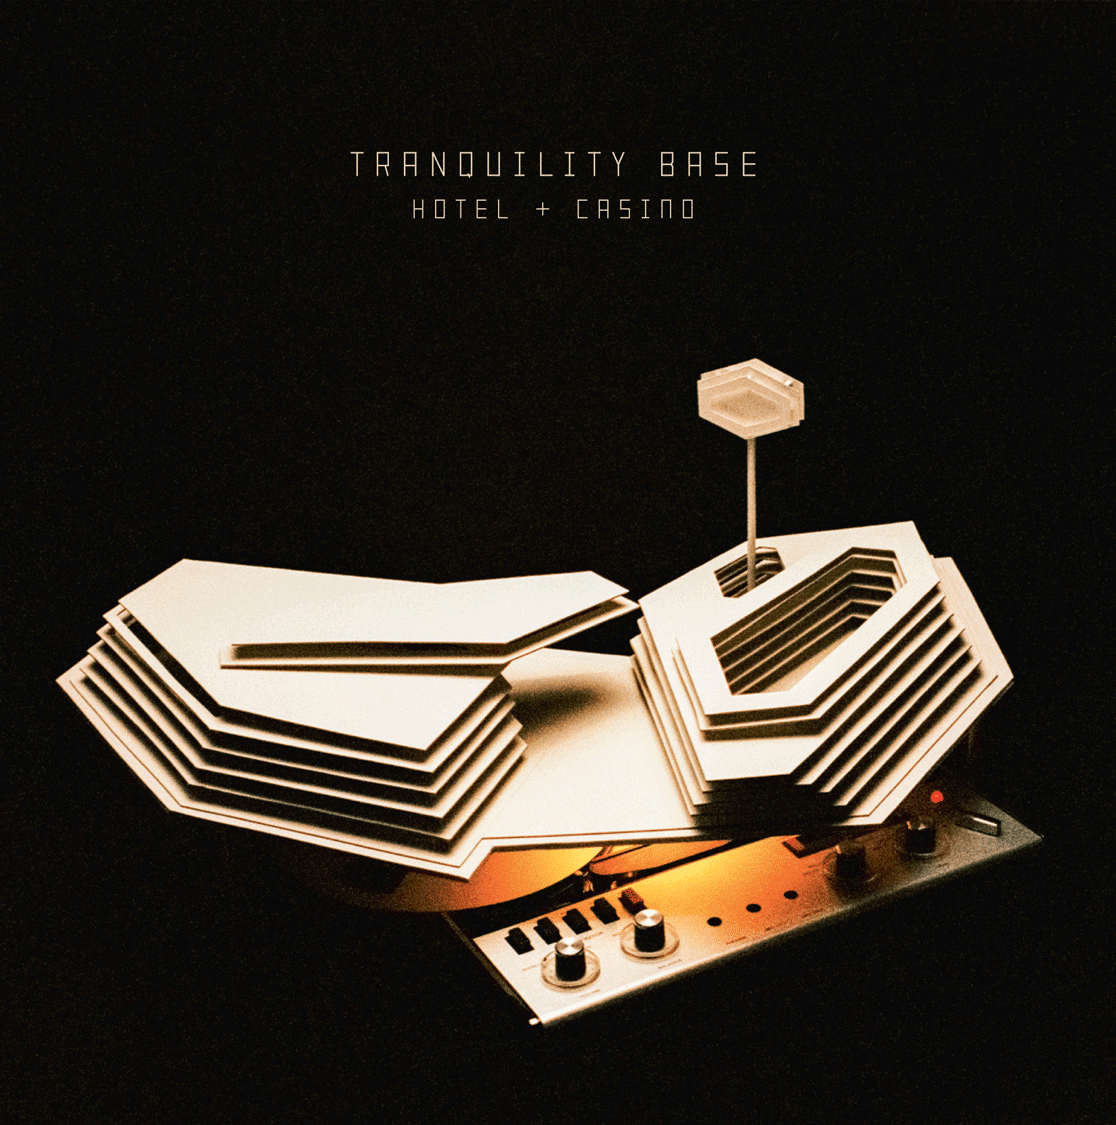 Arctic Monkeys Tranquility Base Hotel Casino